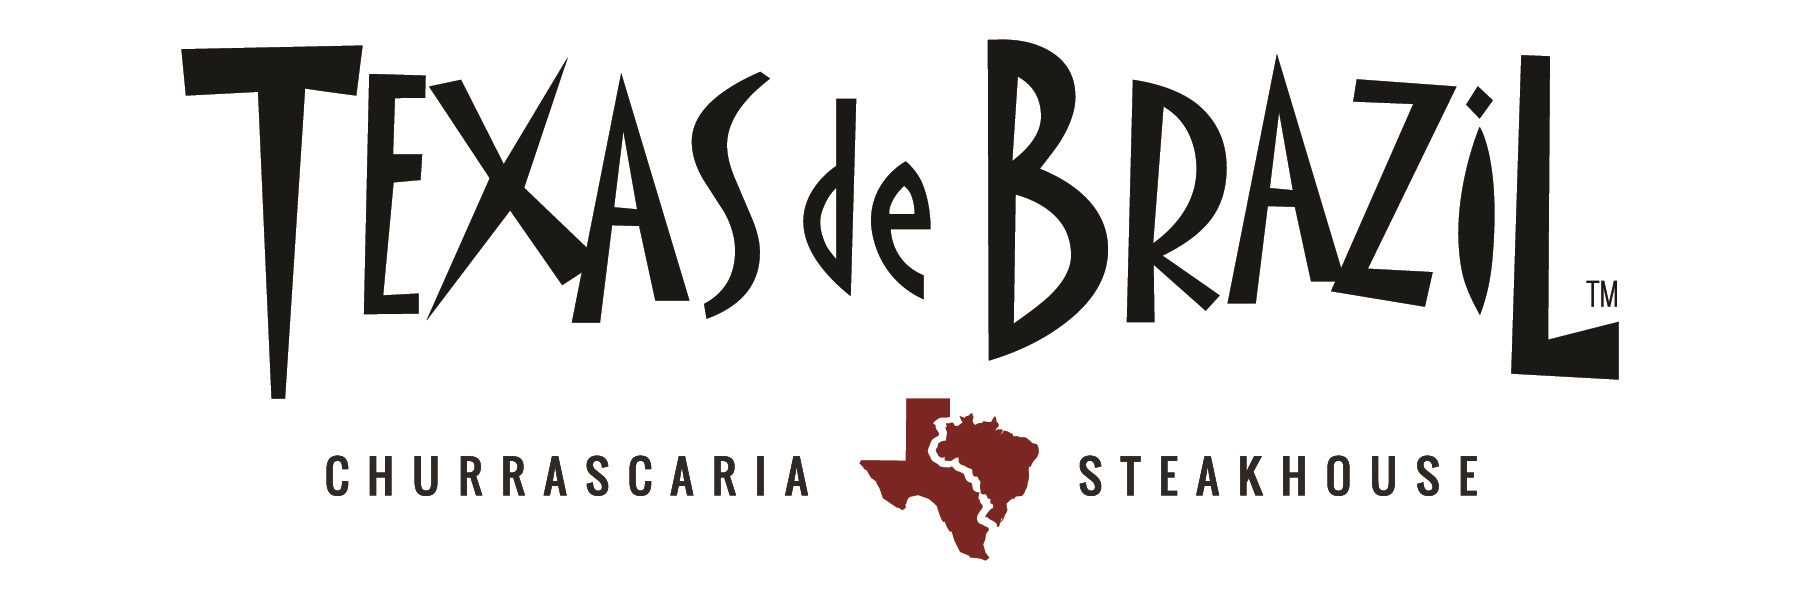 Texas De Brazil Father's Day_ May 12, 2017